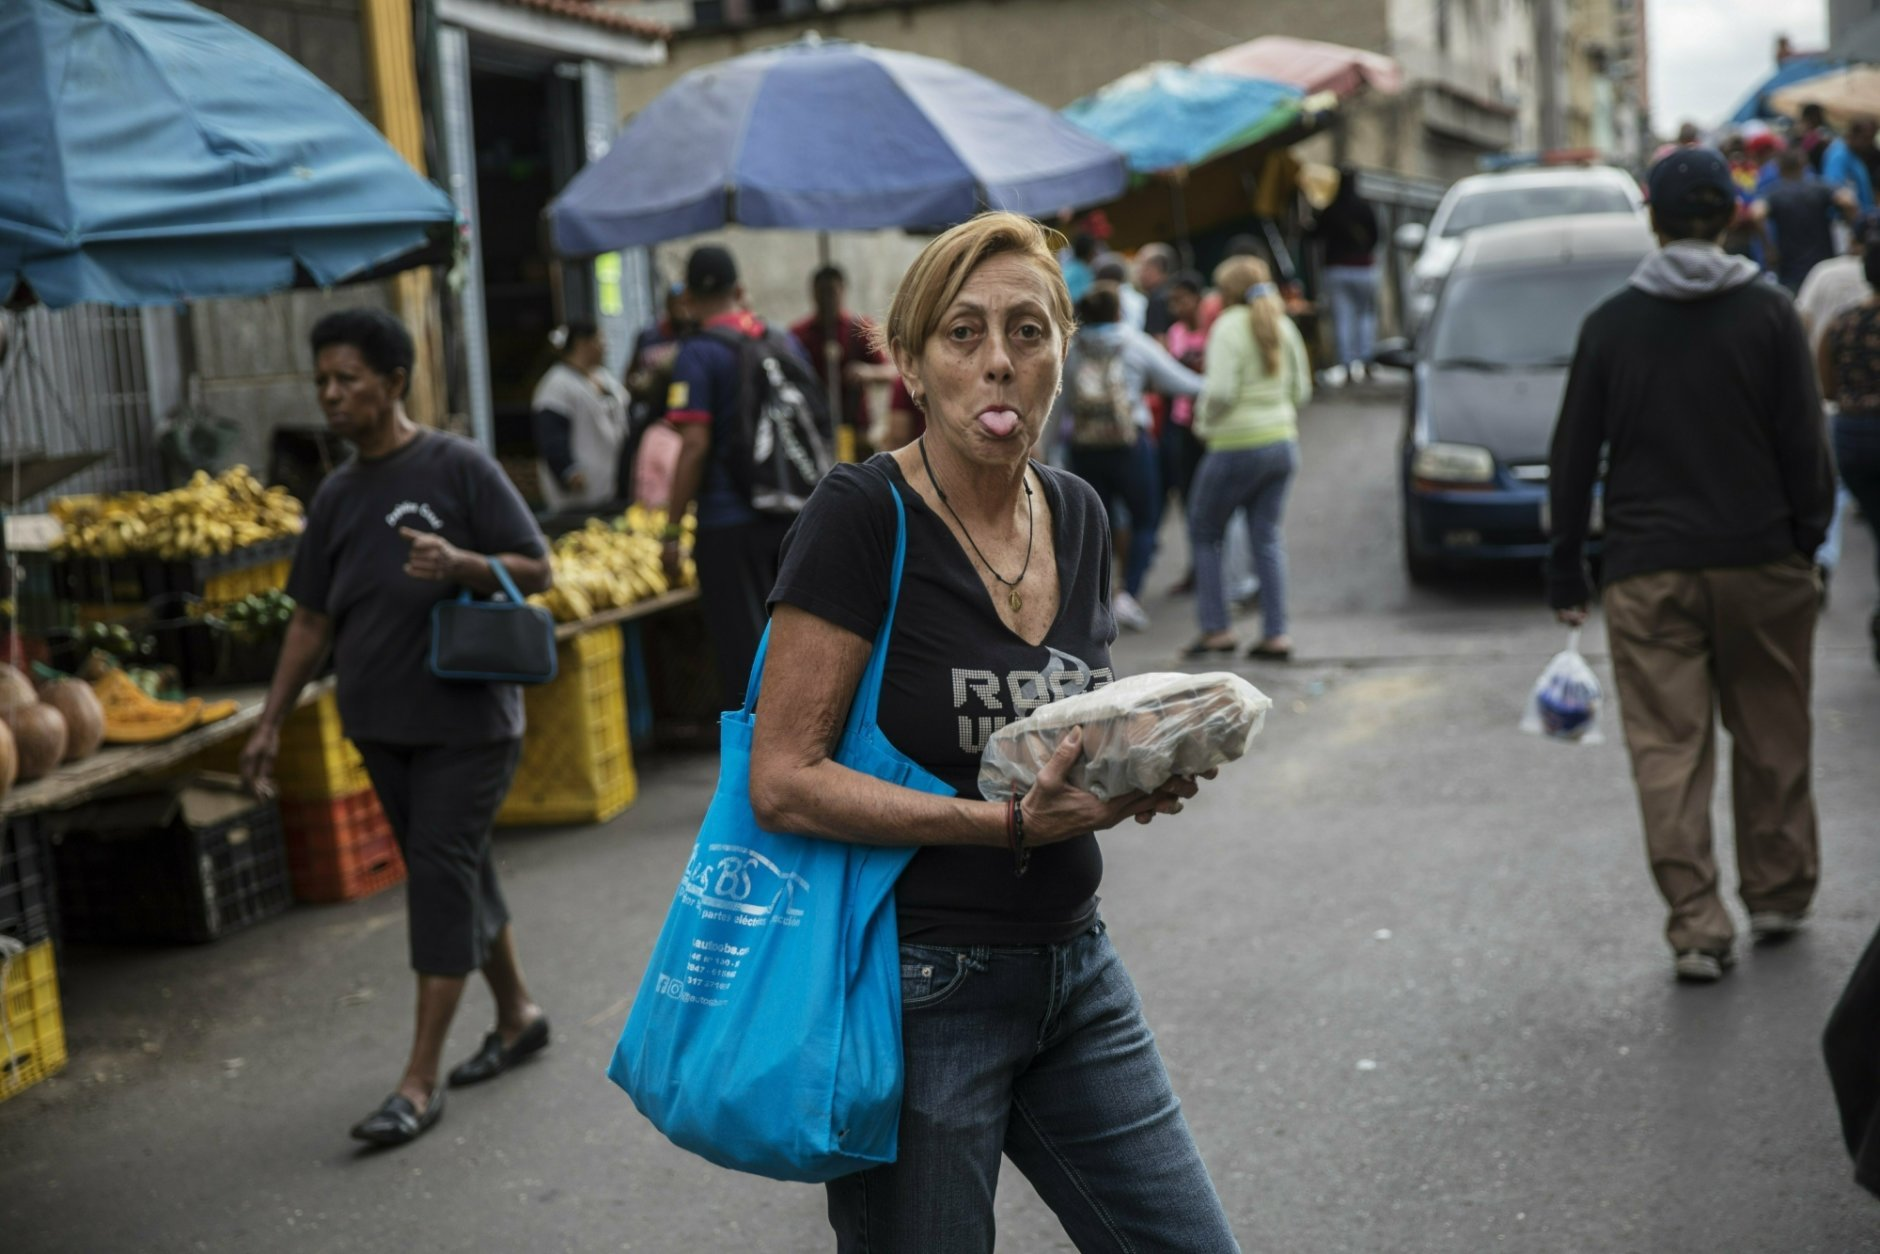 A woman sticks out her tongue as she shops at the Quinta Crespo street market in downtown Caracas, Venezuela, Saturday, Jan. 26, 2019. The country's political showdown moves to the United Nations Saturday where a Security Council meeting called by the United States will pit backers of President Nicolas Maduro against the Trump administration and supporters of the country's self-declared interim leader Juan Guaido. (AP Photo/Rodrigo Abd)